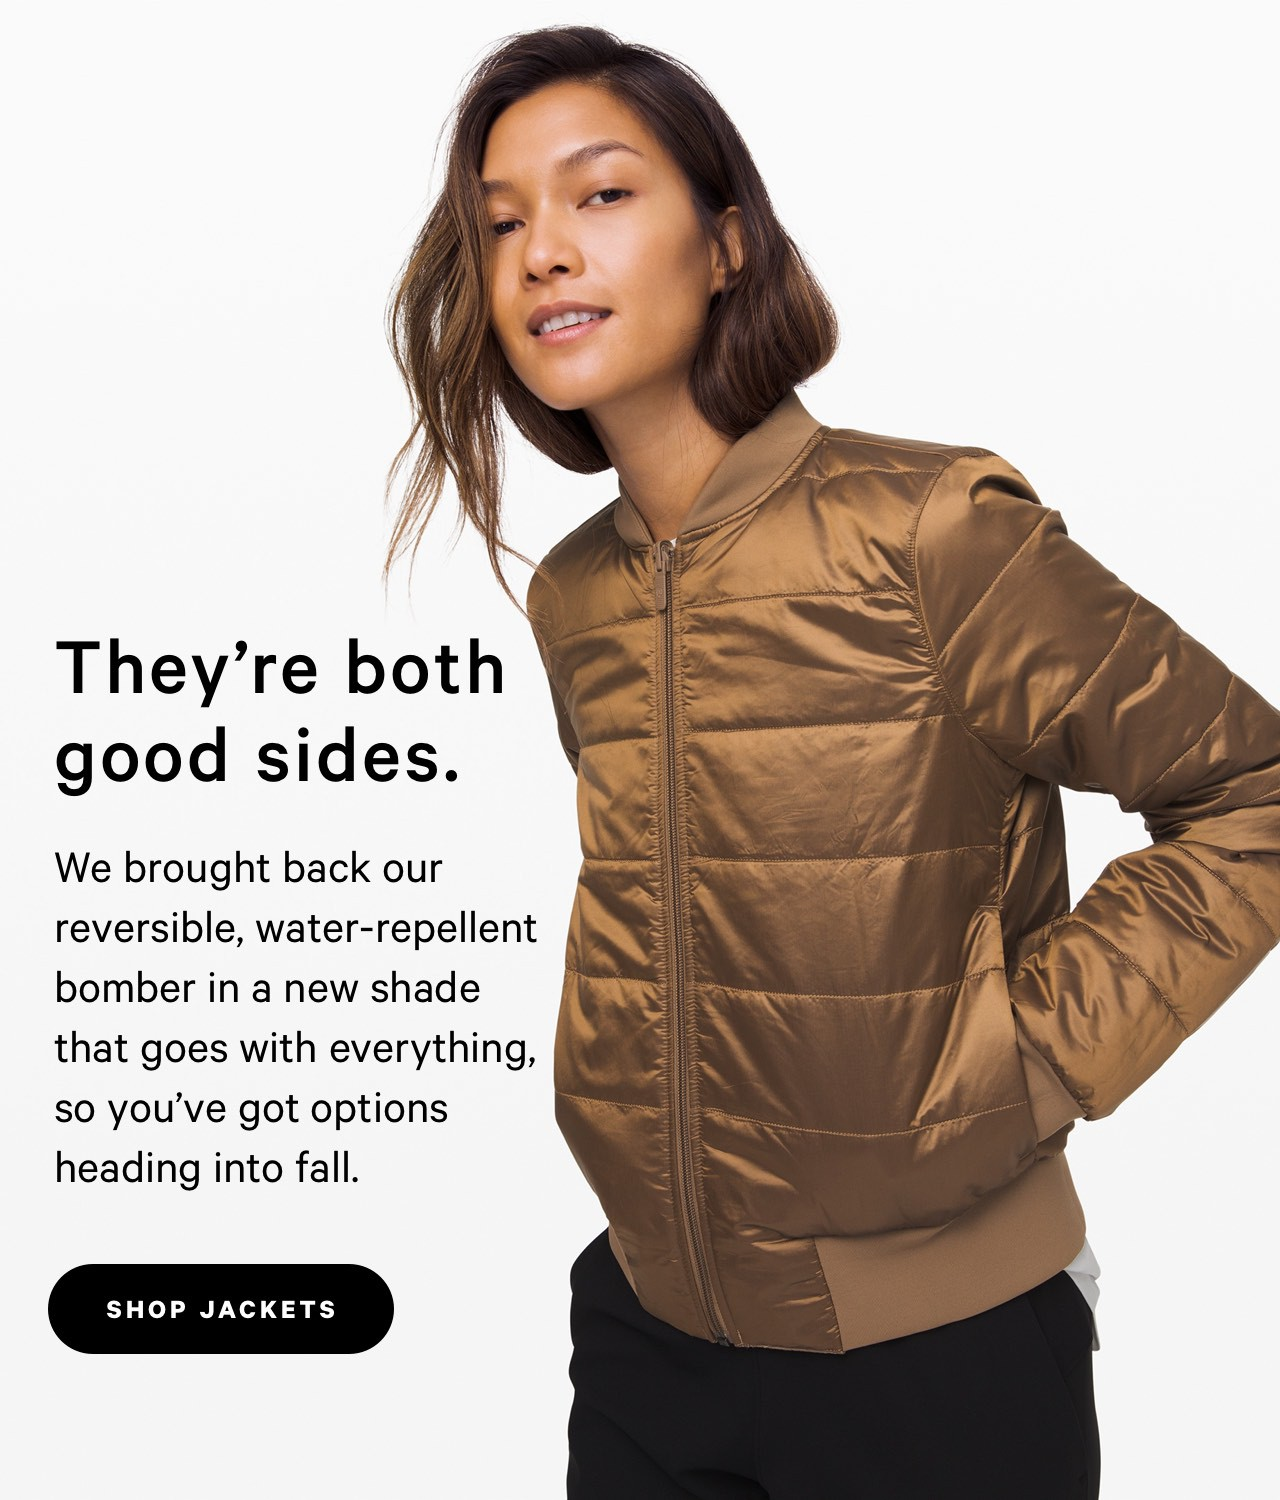 They're both good sides. - SHOP JACKETS